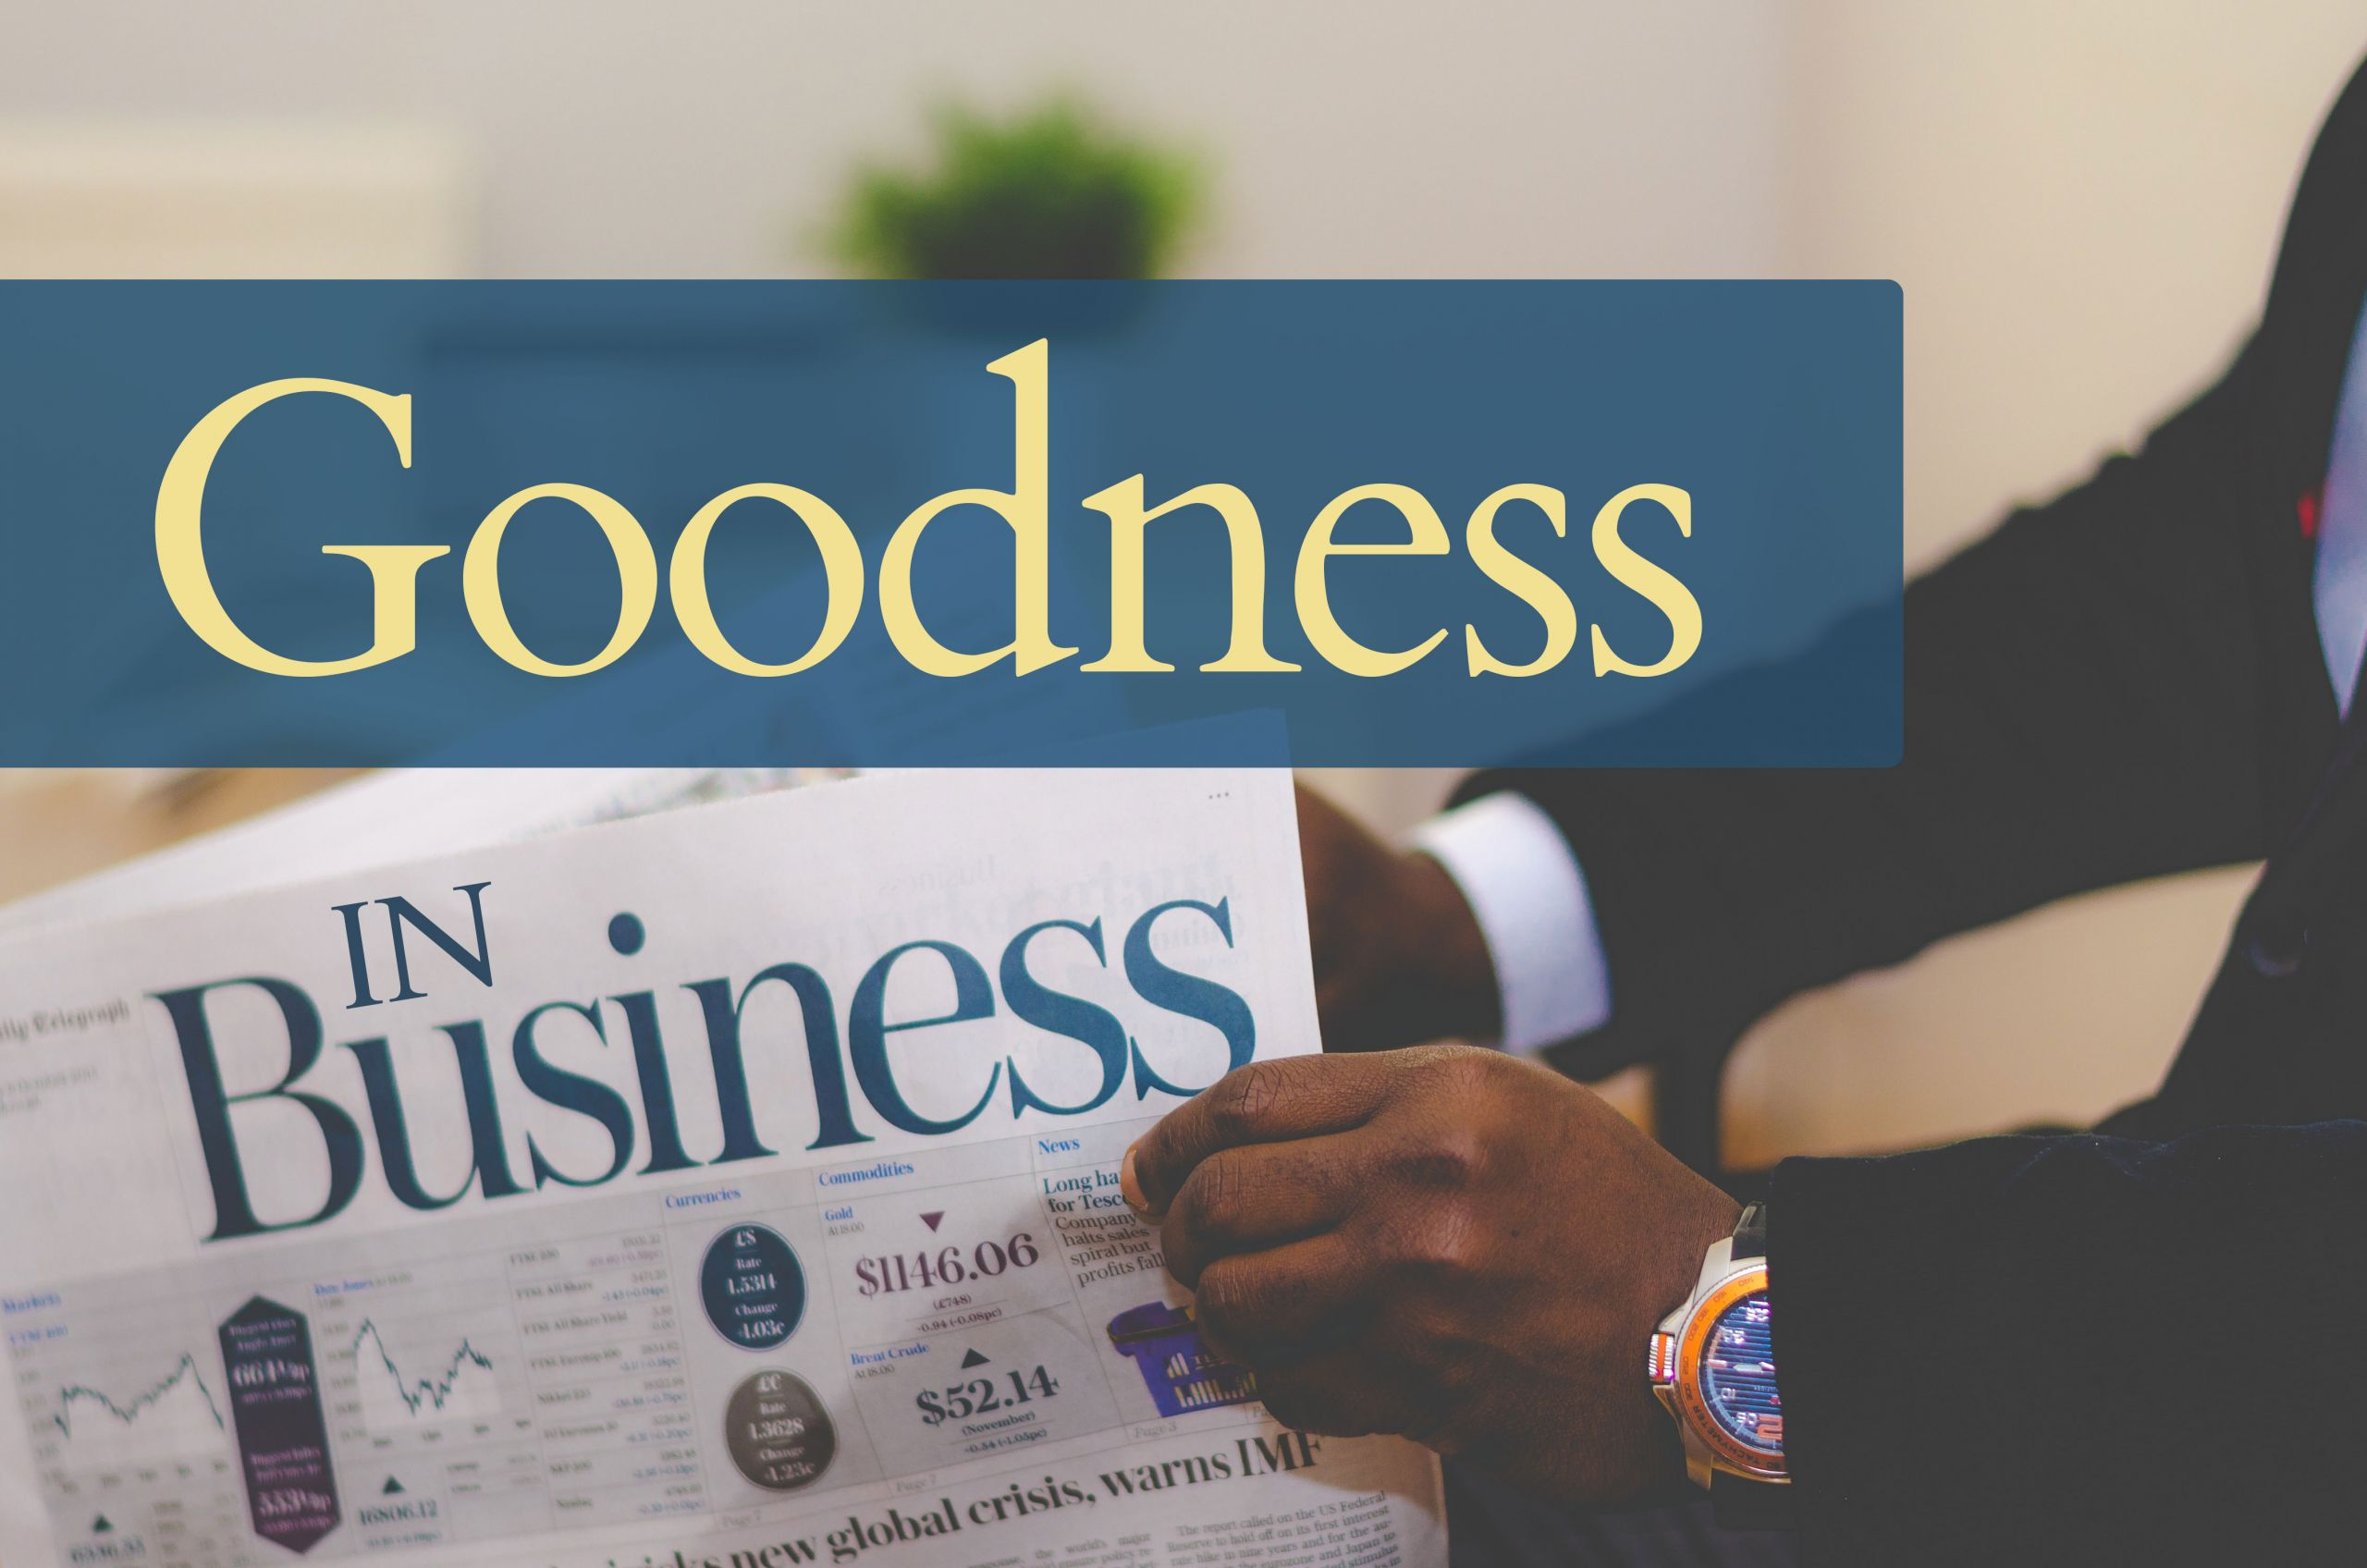 goodness-in-business